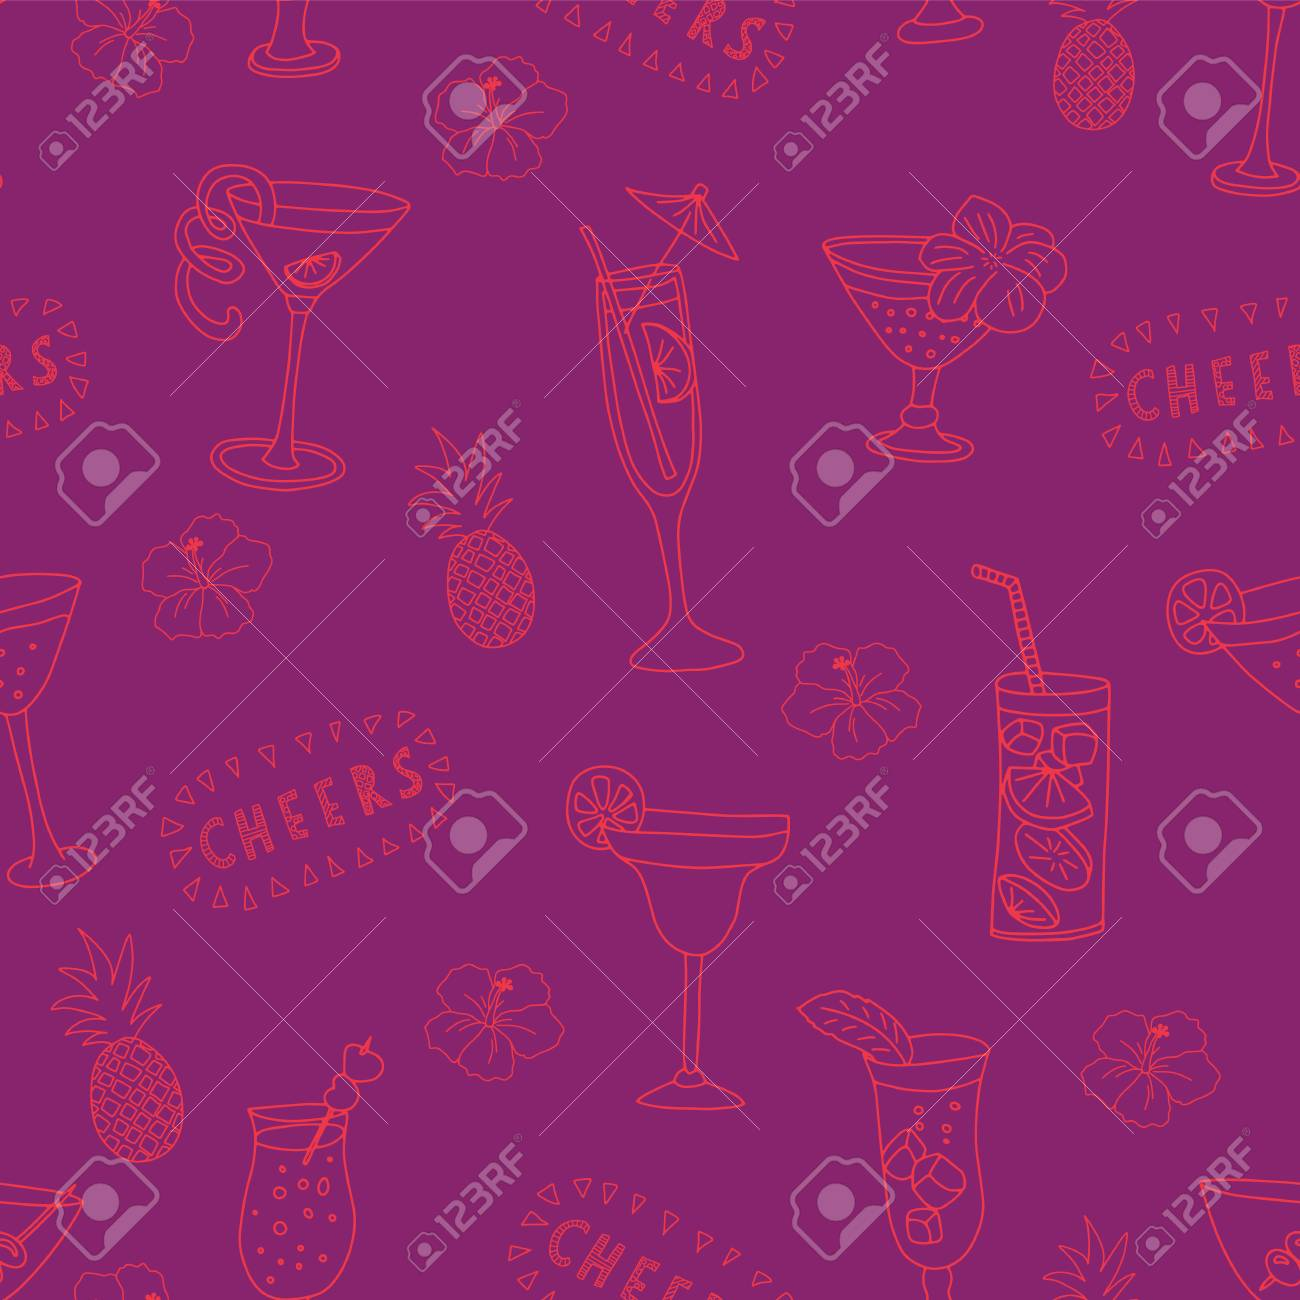 Cocktail Glasses Seamless Vector Pattern Pink Drinking Glasses